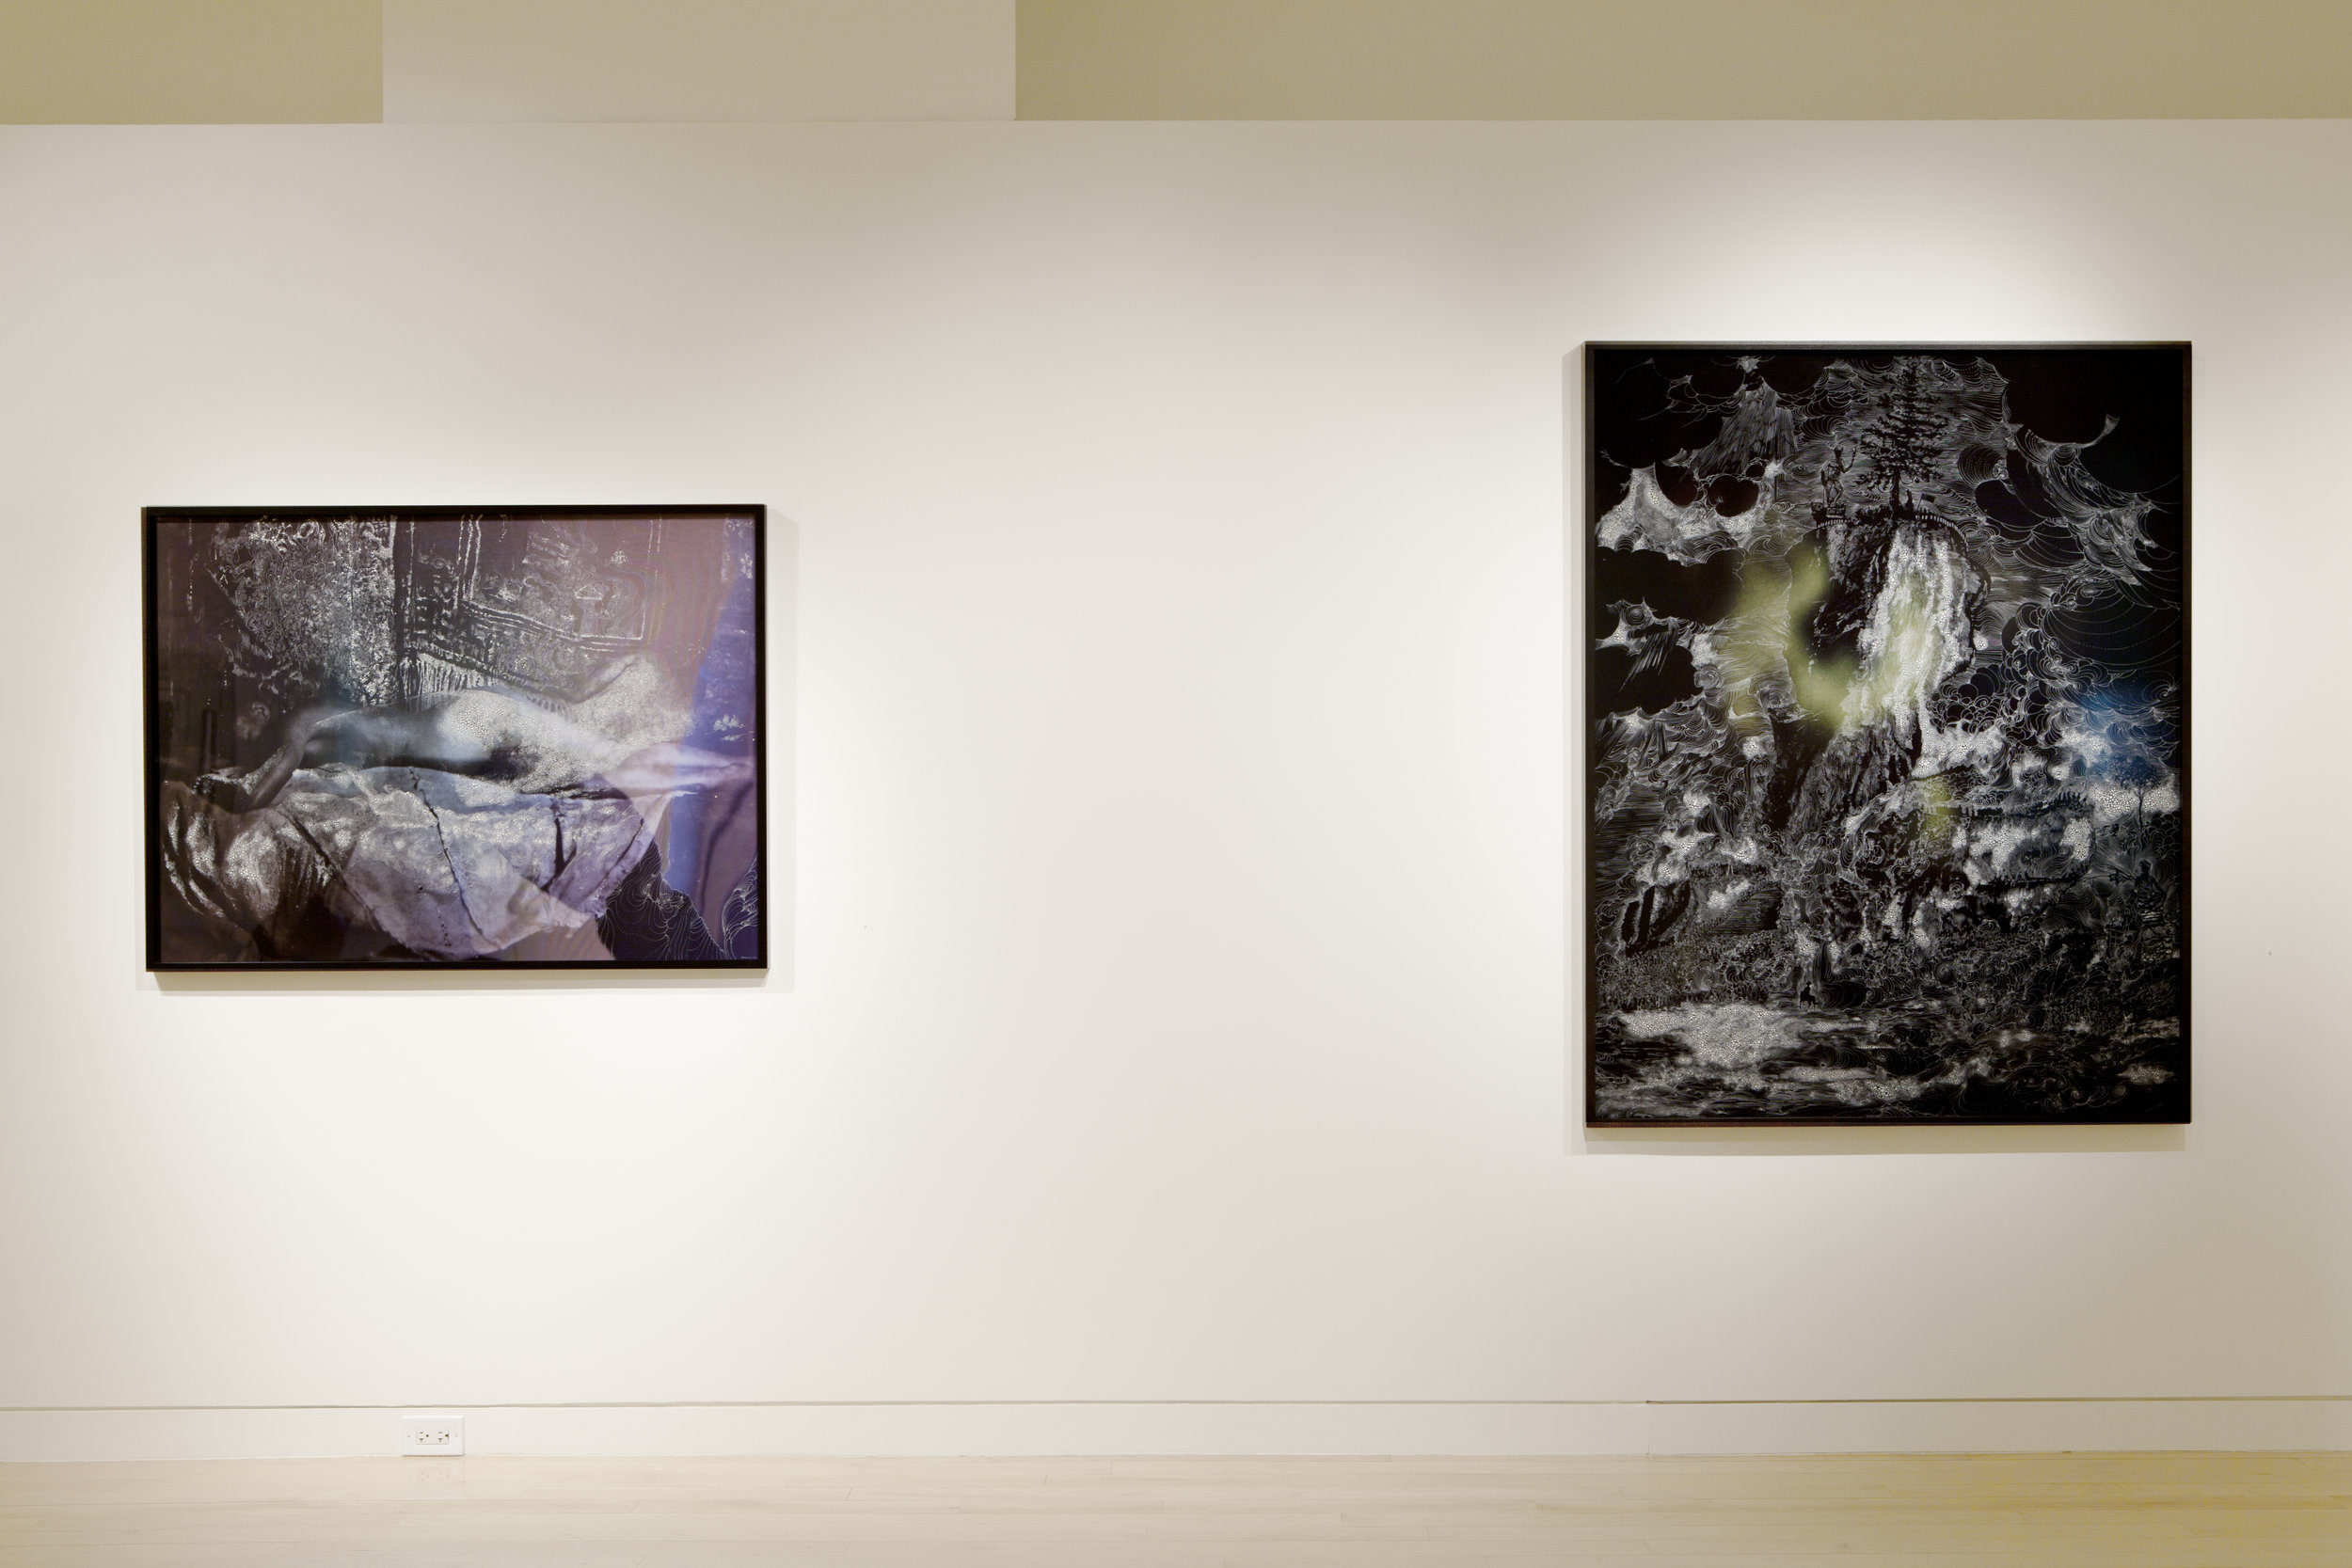 Nudes and Revolutions install-Houk 2011_08.jpg